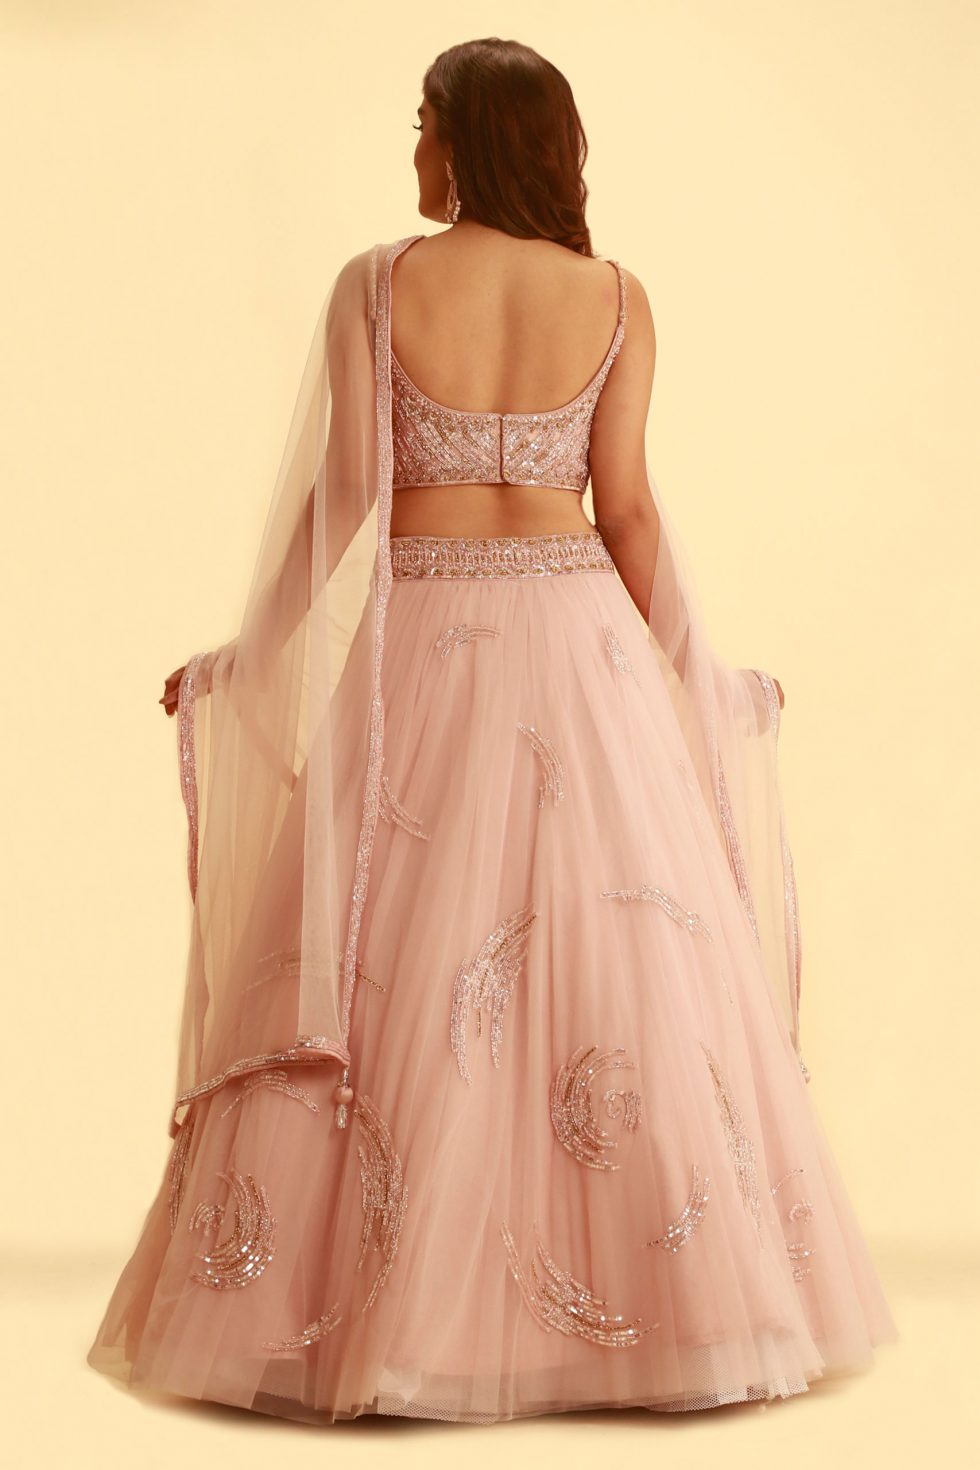 Petal pink tulle lehenga set with self embroidery and matching net dupatta